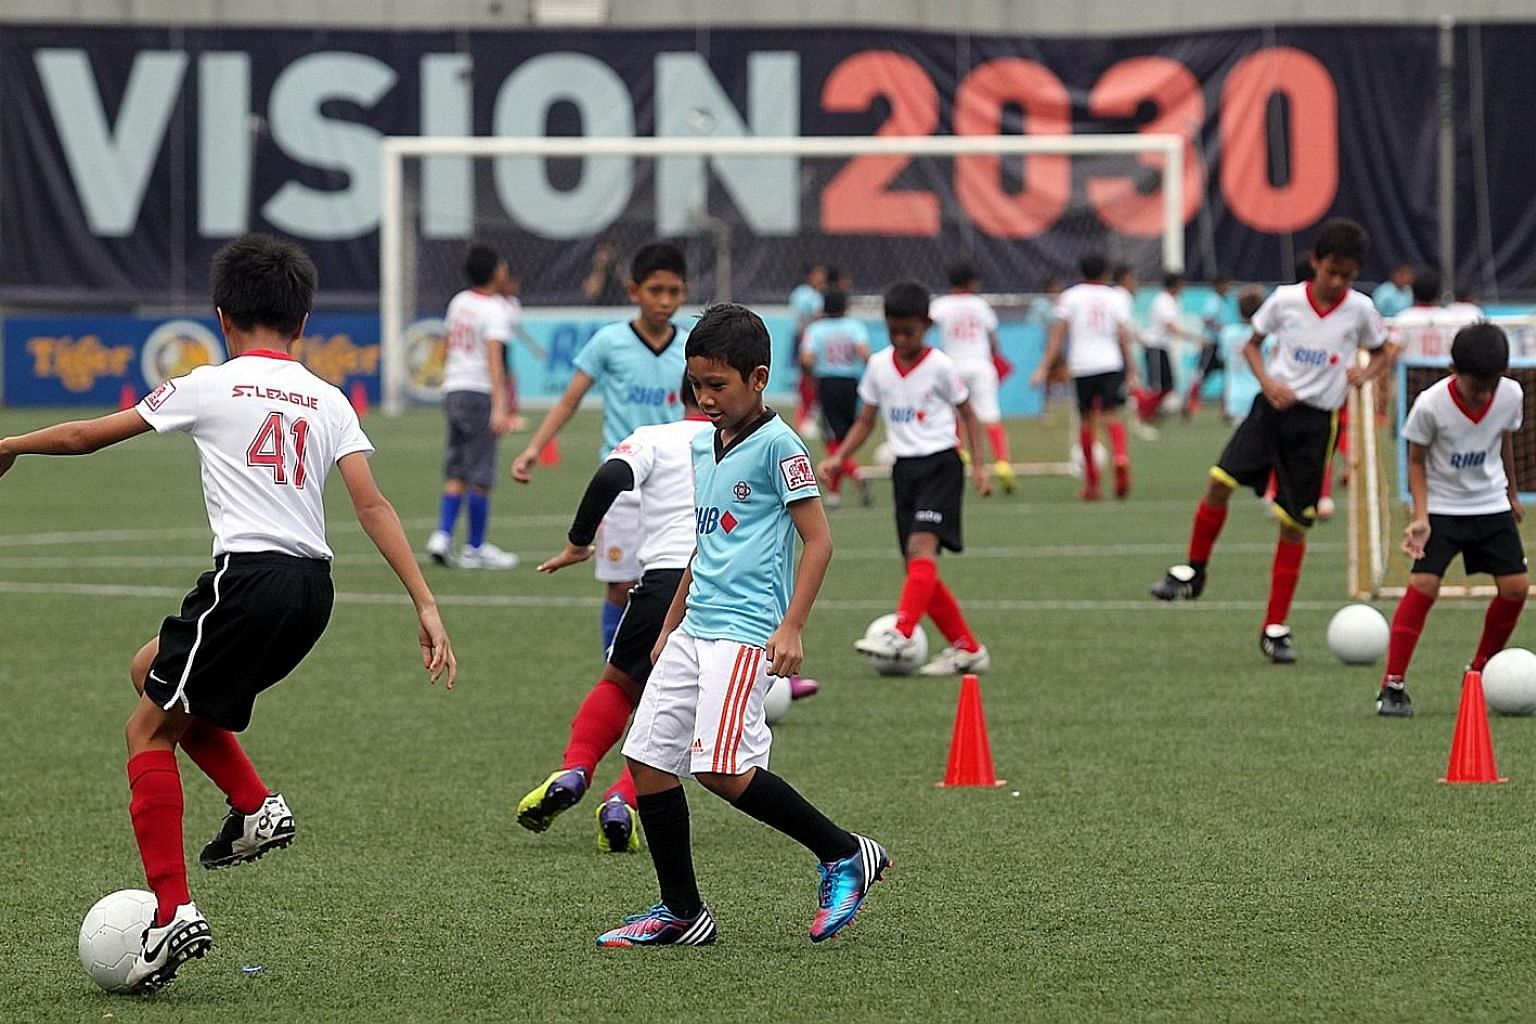 FAS vice-president Edwin Tong said that the target group for the 2034 World Cup would be those currently aged between eight and 15. There are an estimated 6,800 of such youngsters playing in FAS' Centres of Excellence (COE), Sport Singapore's develop